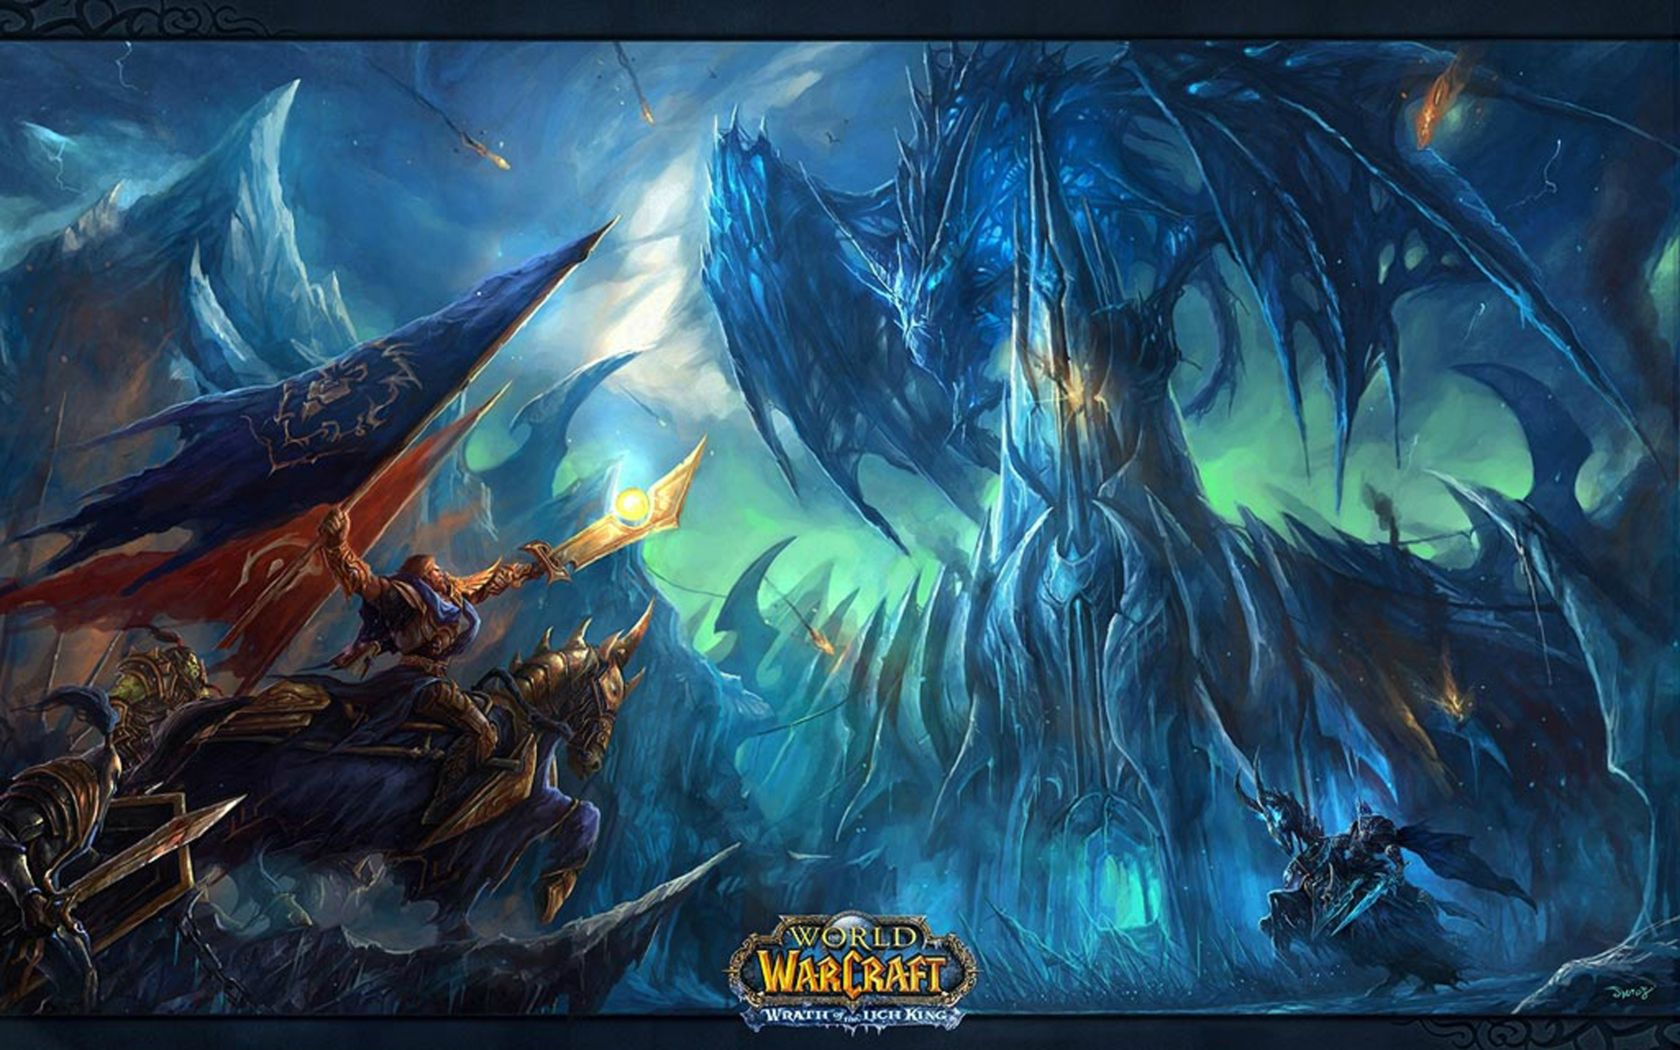 World Of Warcraft Wallpaper 1600x900